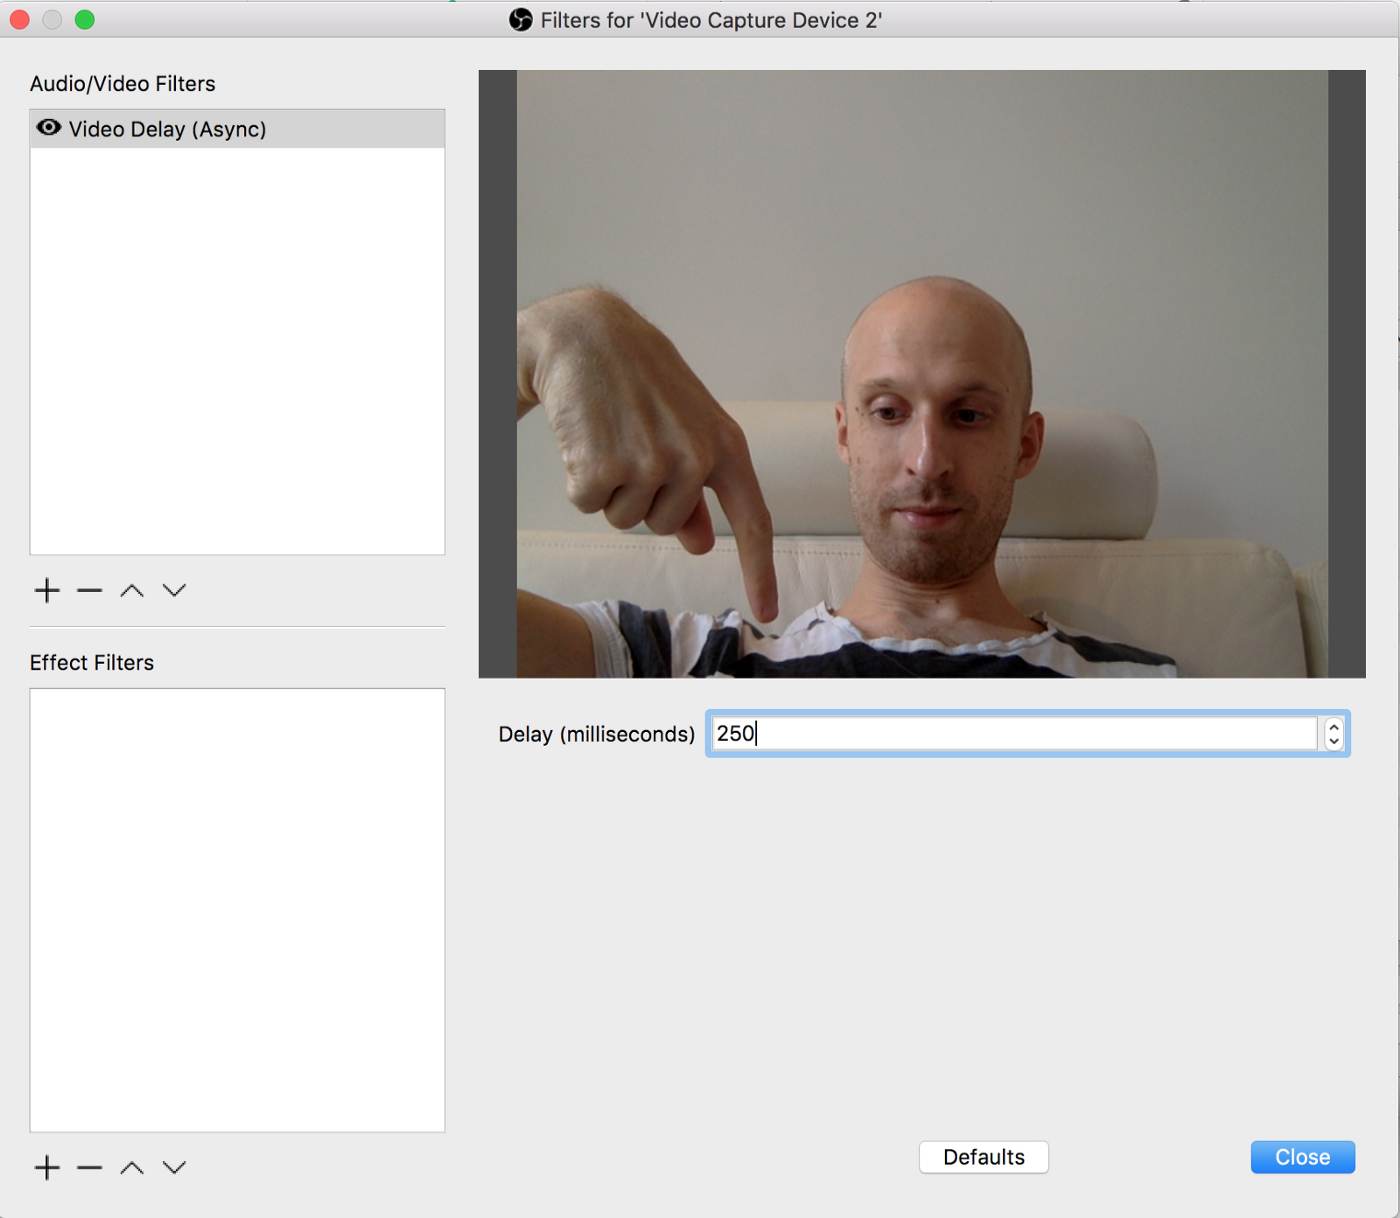 How to live stream with your laptop webcam and iPhone for $1